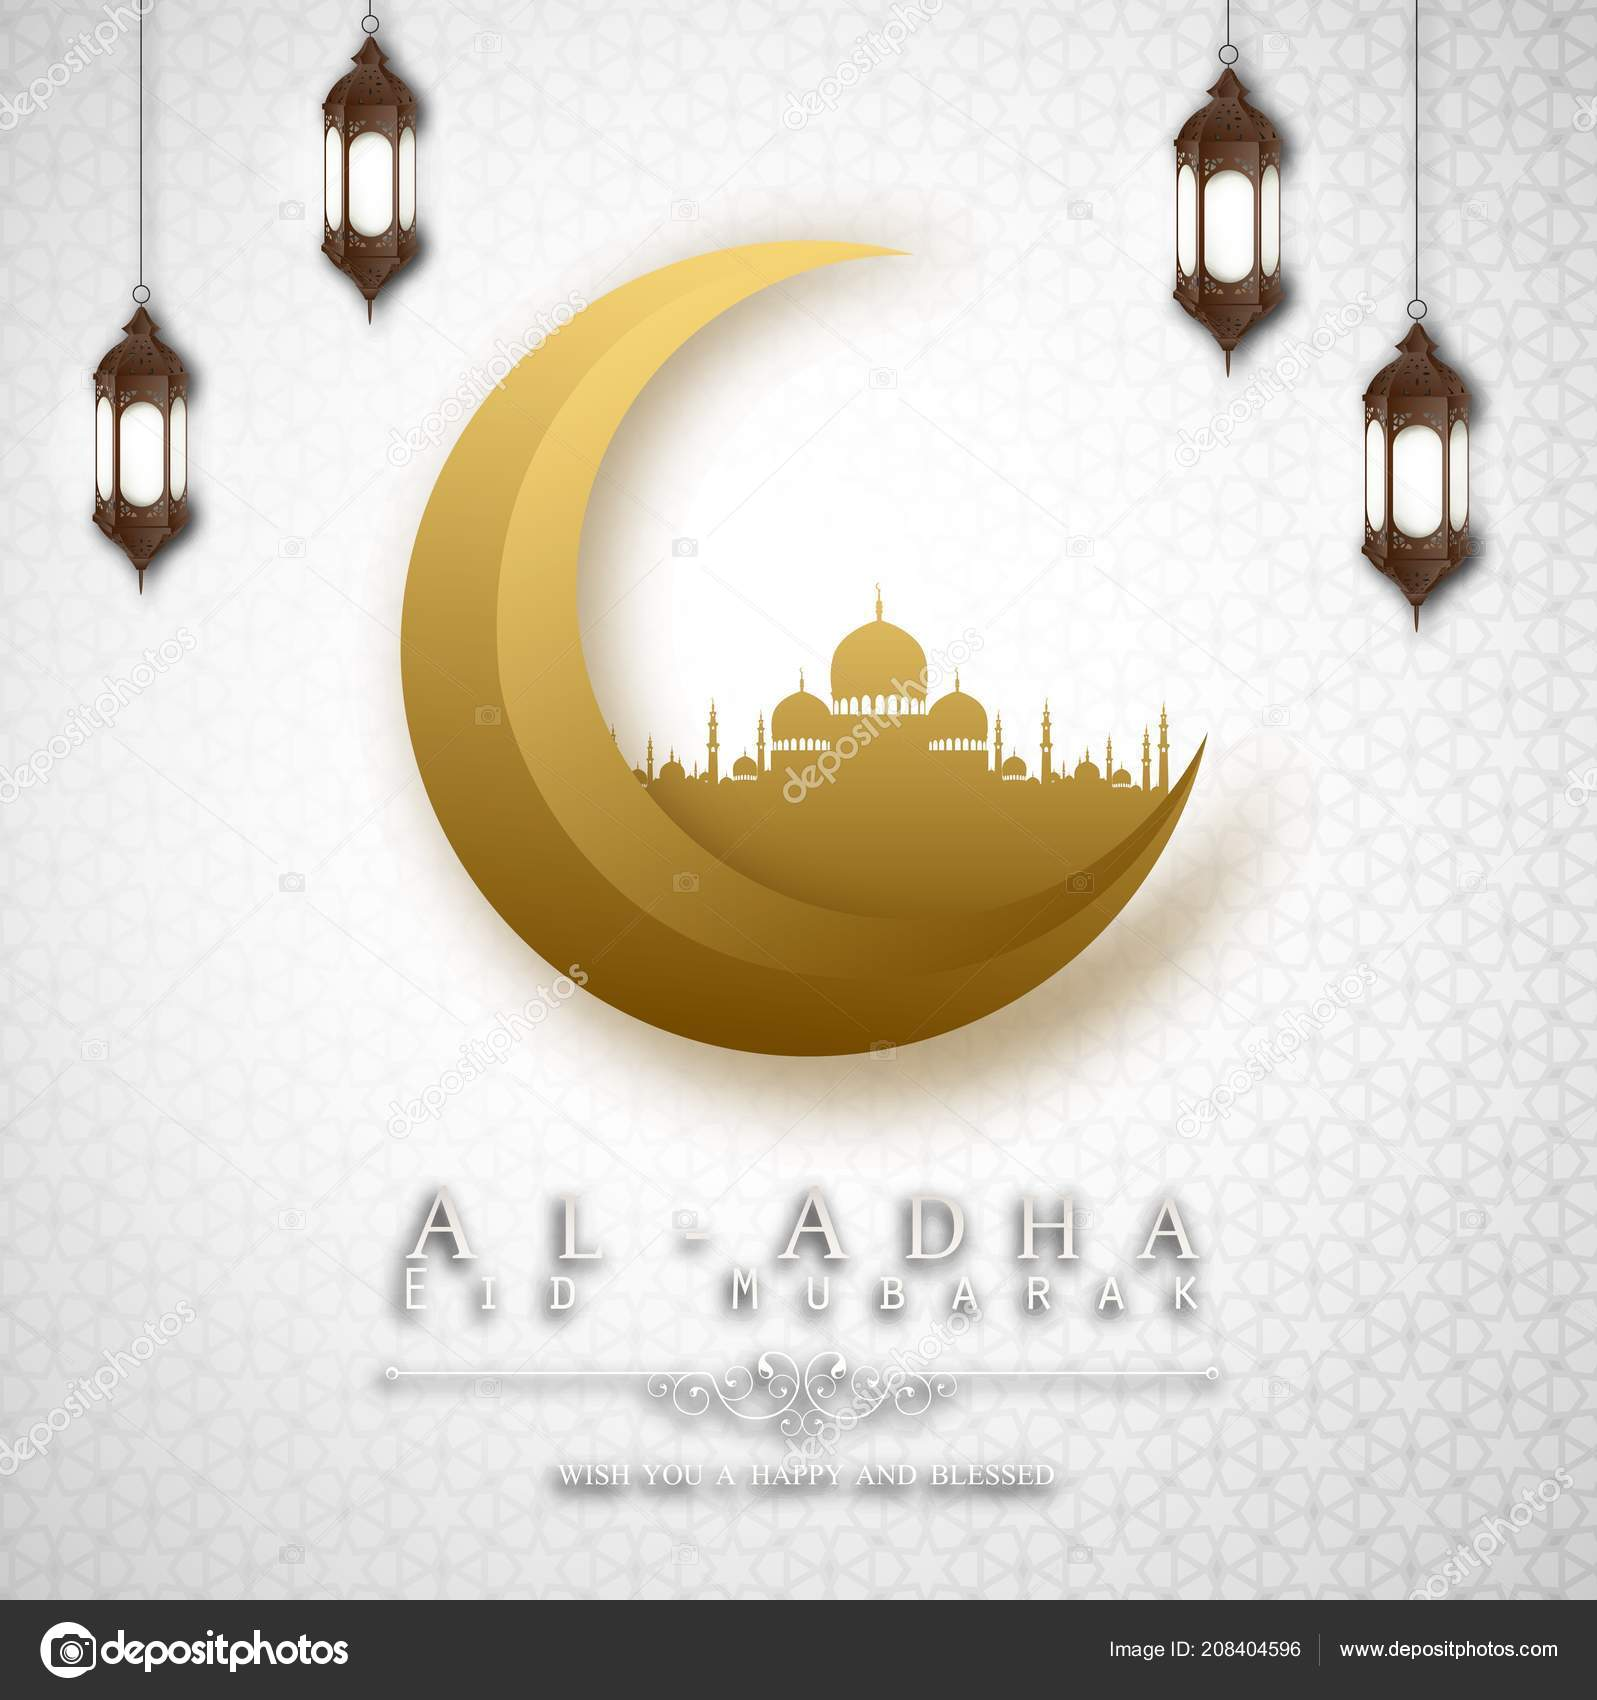 vector illustration happy new hijri year islamic new year greeting stock vector